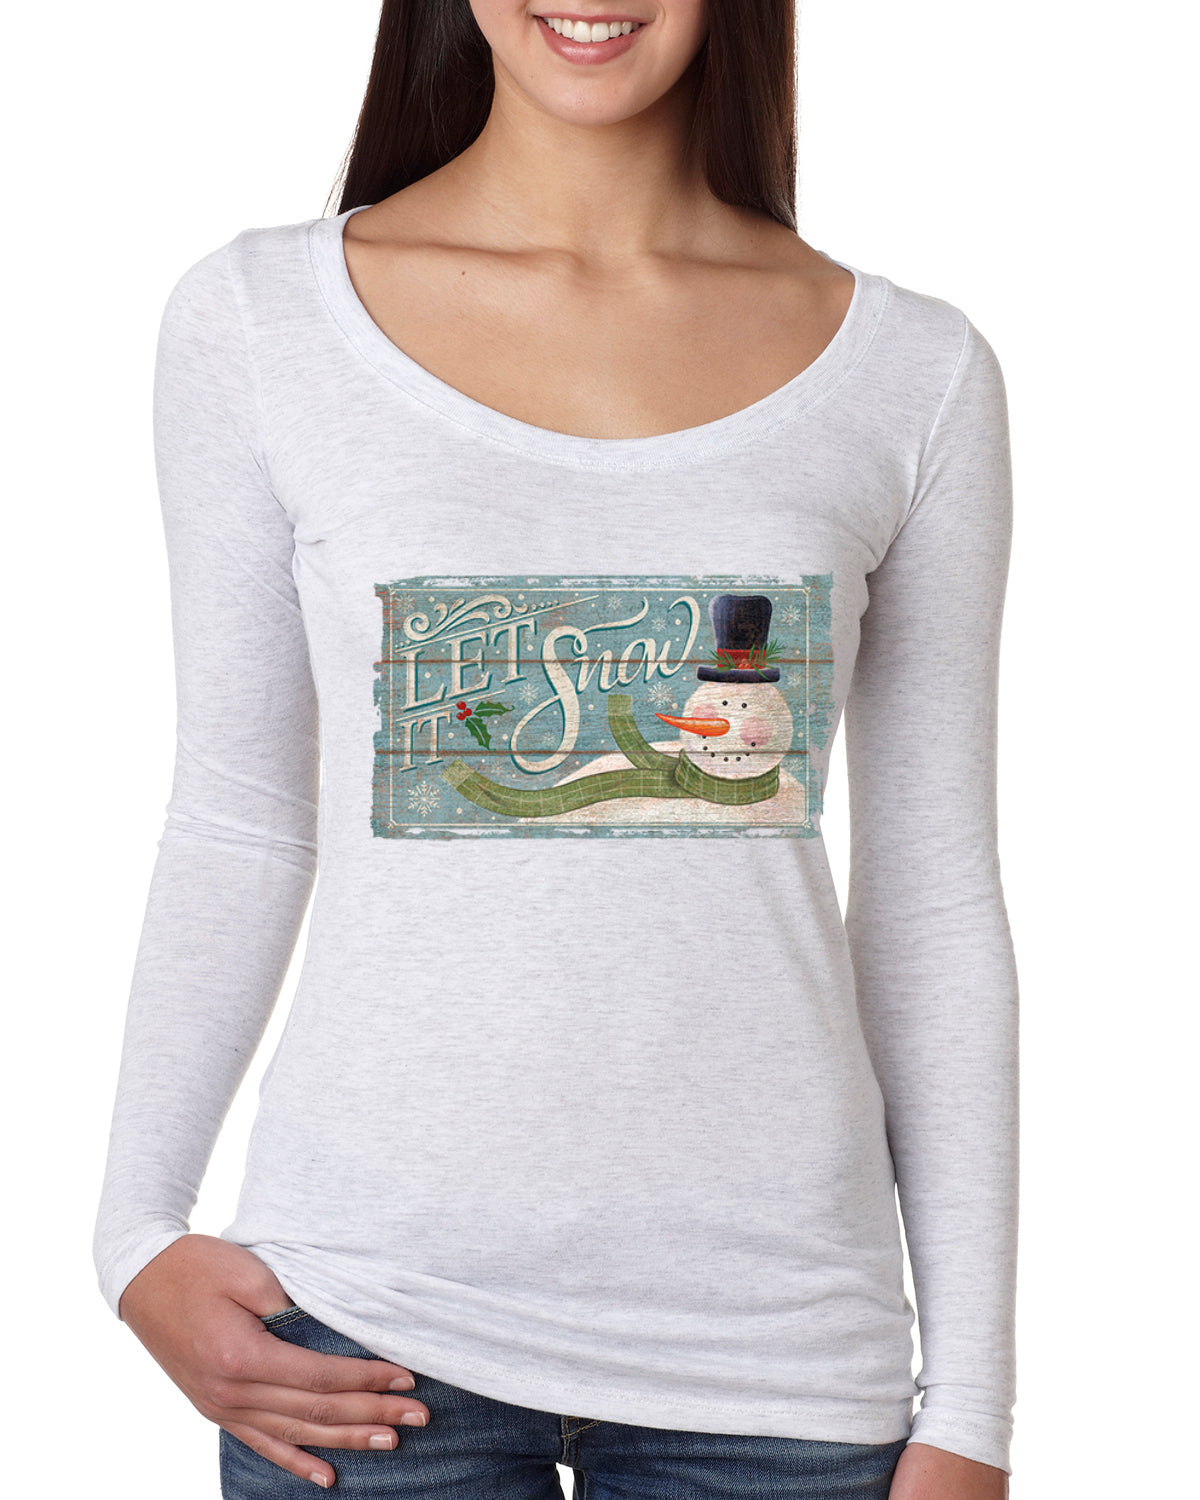 Let it Snow Green Scarf Snowman Christmas Womens Scoop Long Sleeve Top